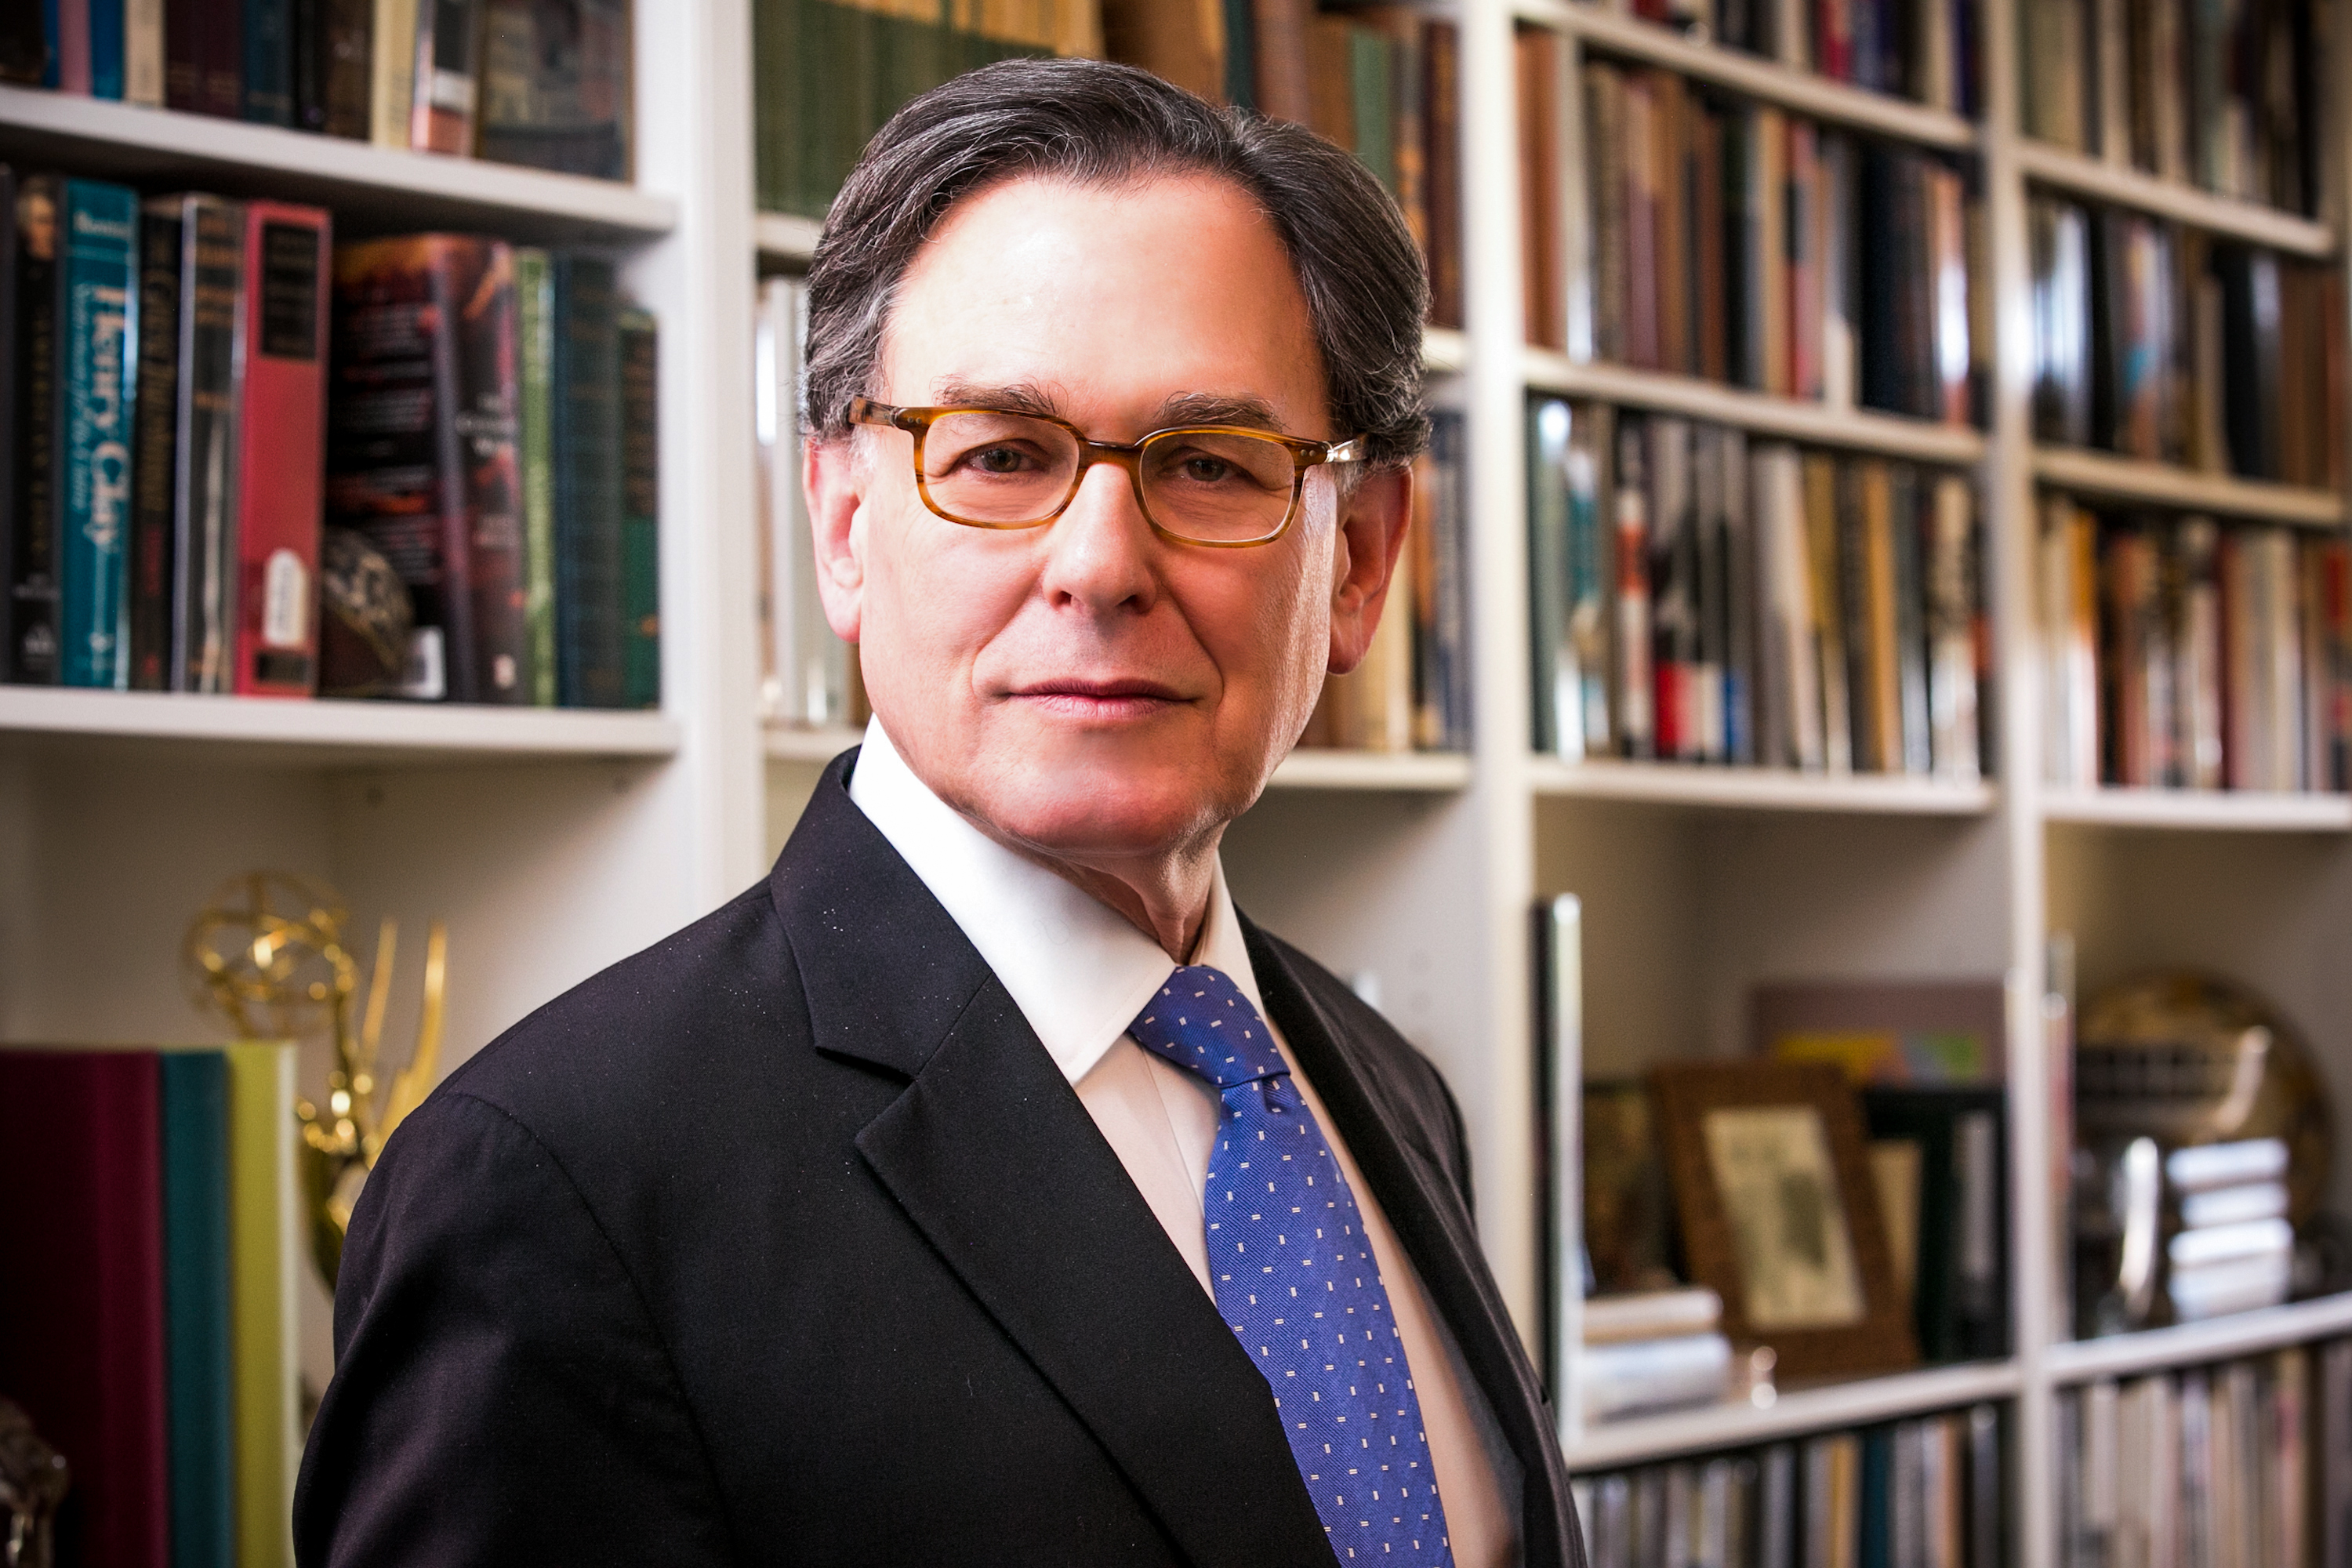 abrahm lincoln and the self made From the 19th annual abraham lincoln symposium, sidney blumenthal talks about his book, [a self-made man: the political life of abraham lincoln.